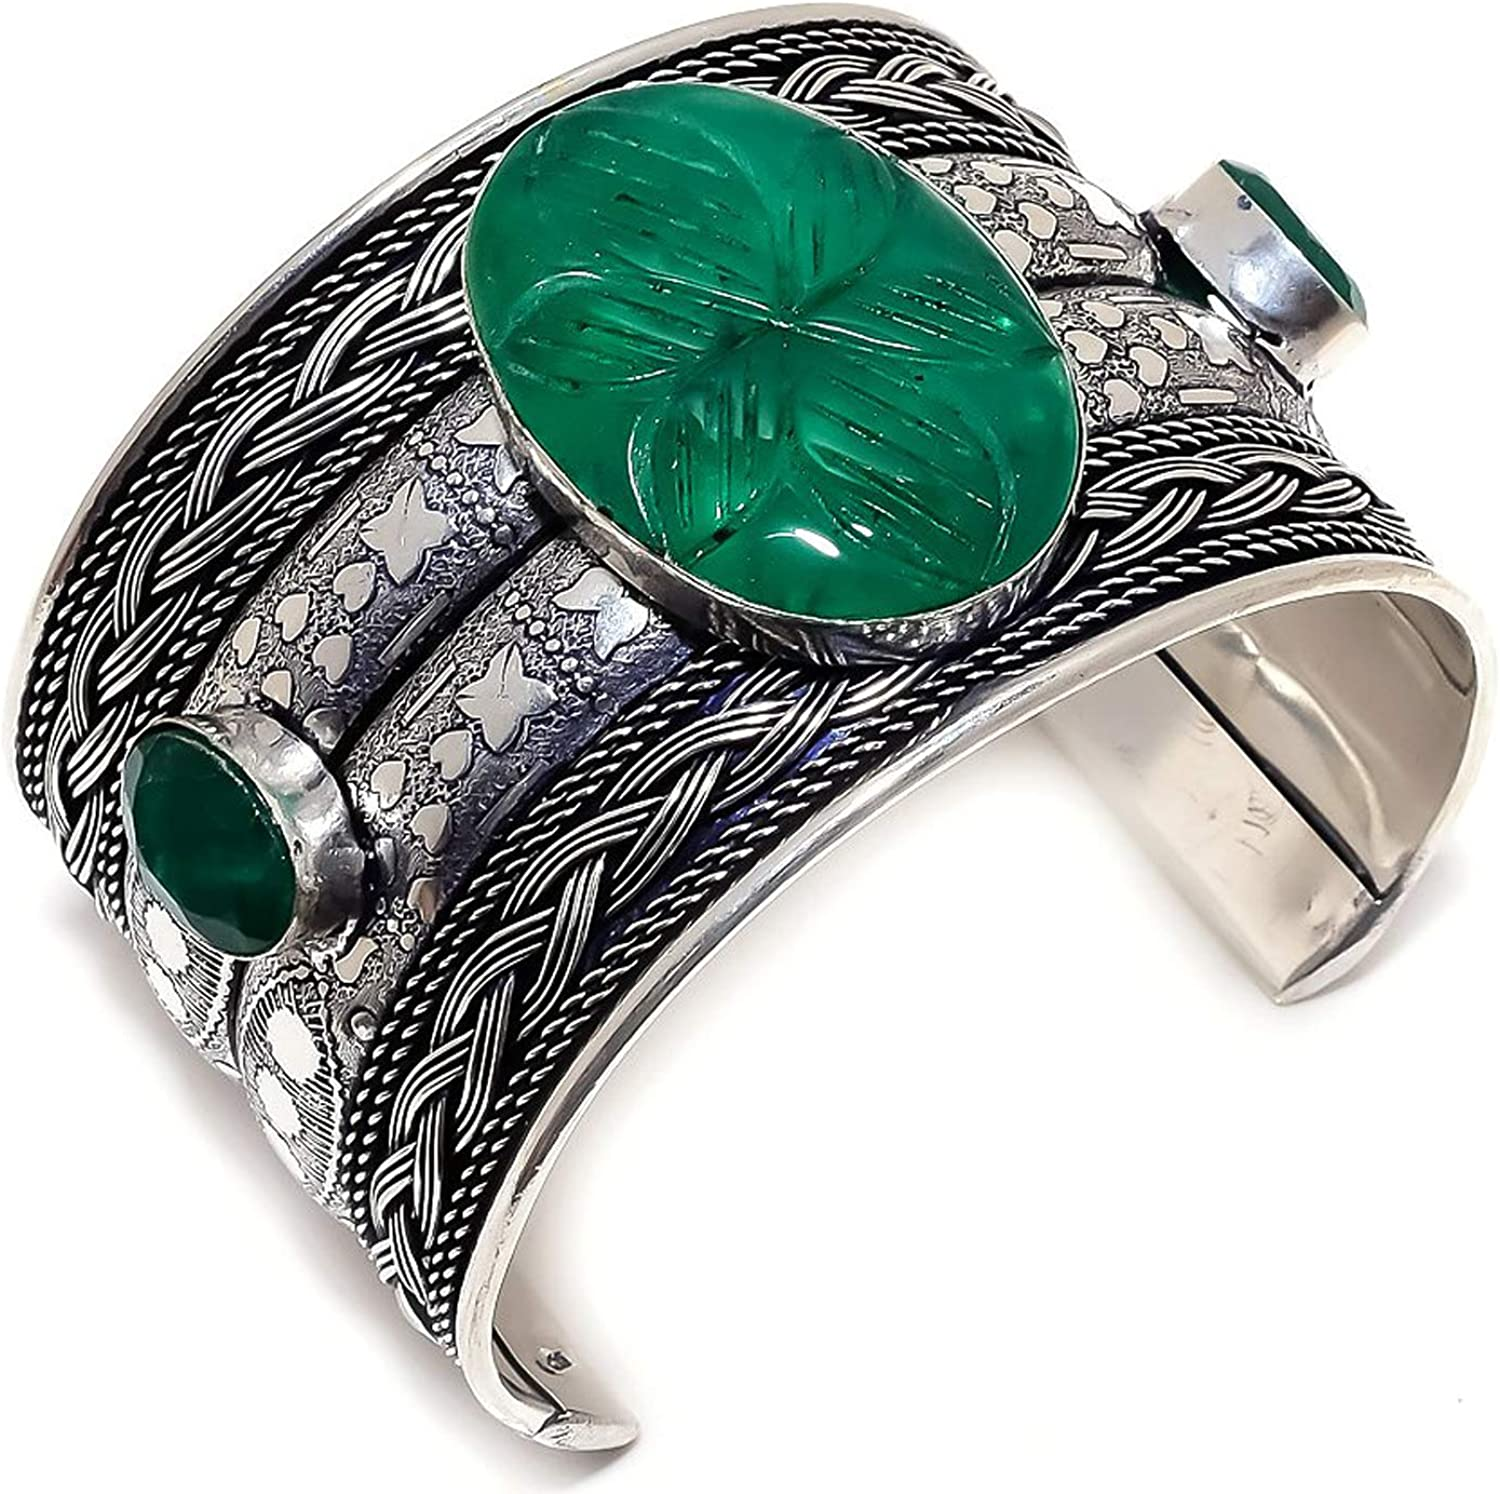 LARA GEMS Popularity STONES AND JEWELLERS Easy-to-use Zambian Carved Mines 925 Emerald